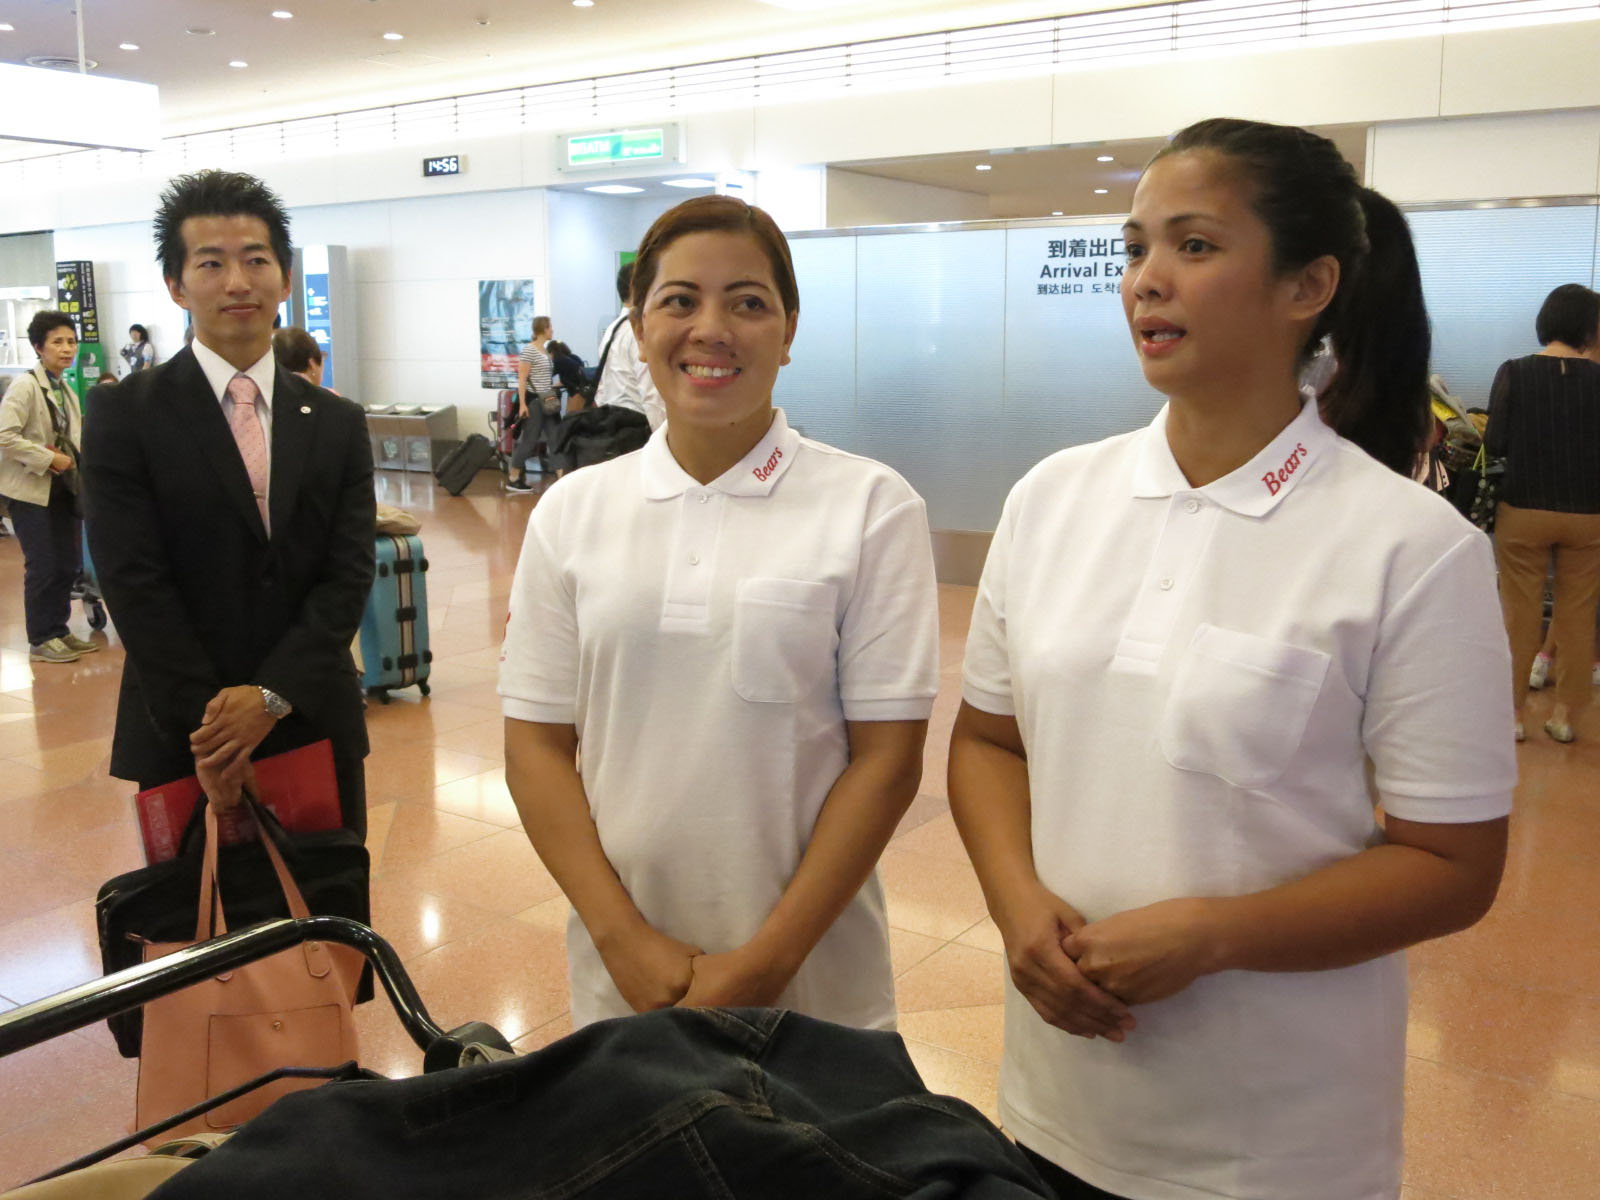 Jocelyn Paloma Oledan (center) and Marianne Paragua Culaniban, who arrived from the Philippines on Wednesday to work as housekeepers in Tokyo, speak to reporters at Haneda airport. | KAZUAKI NAGATA